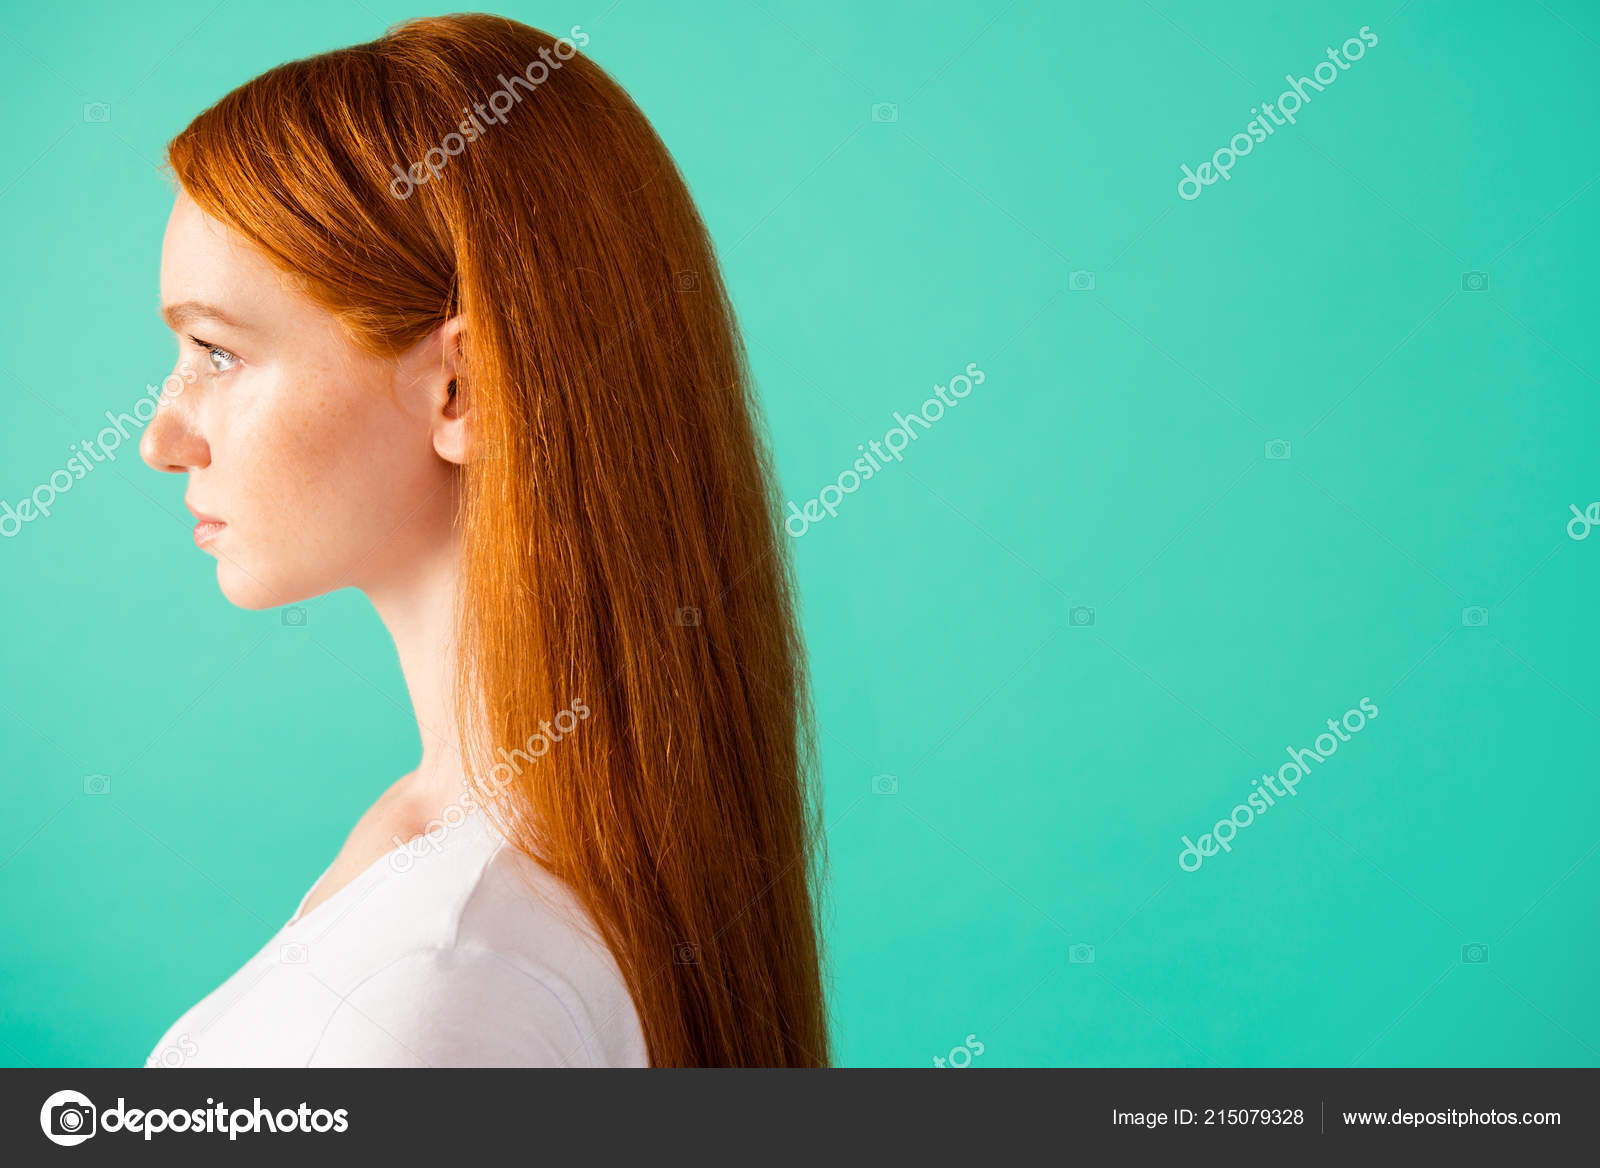 Profile Side View Of Nice Peaceful Calm Content Cute Attractive Stock Photo C Deagreez1 215079328